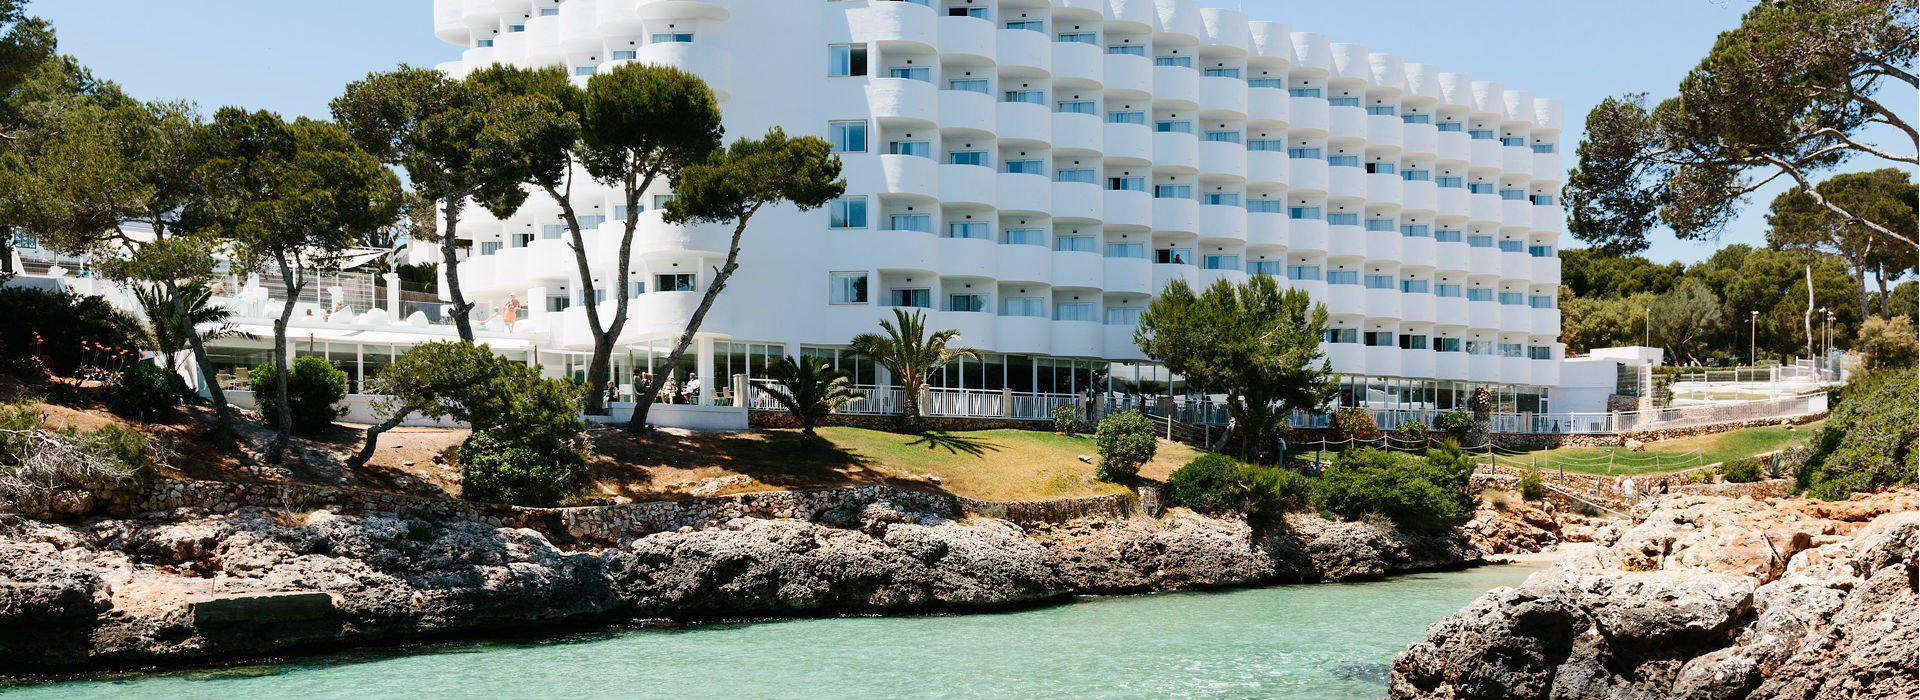 Aluasoul · mallorca resort aluasoul mallorca resort (adults only) hotel cala d'or, mallorca